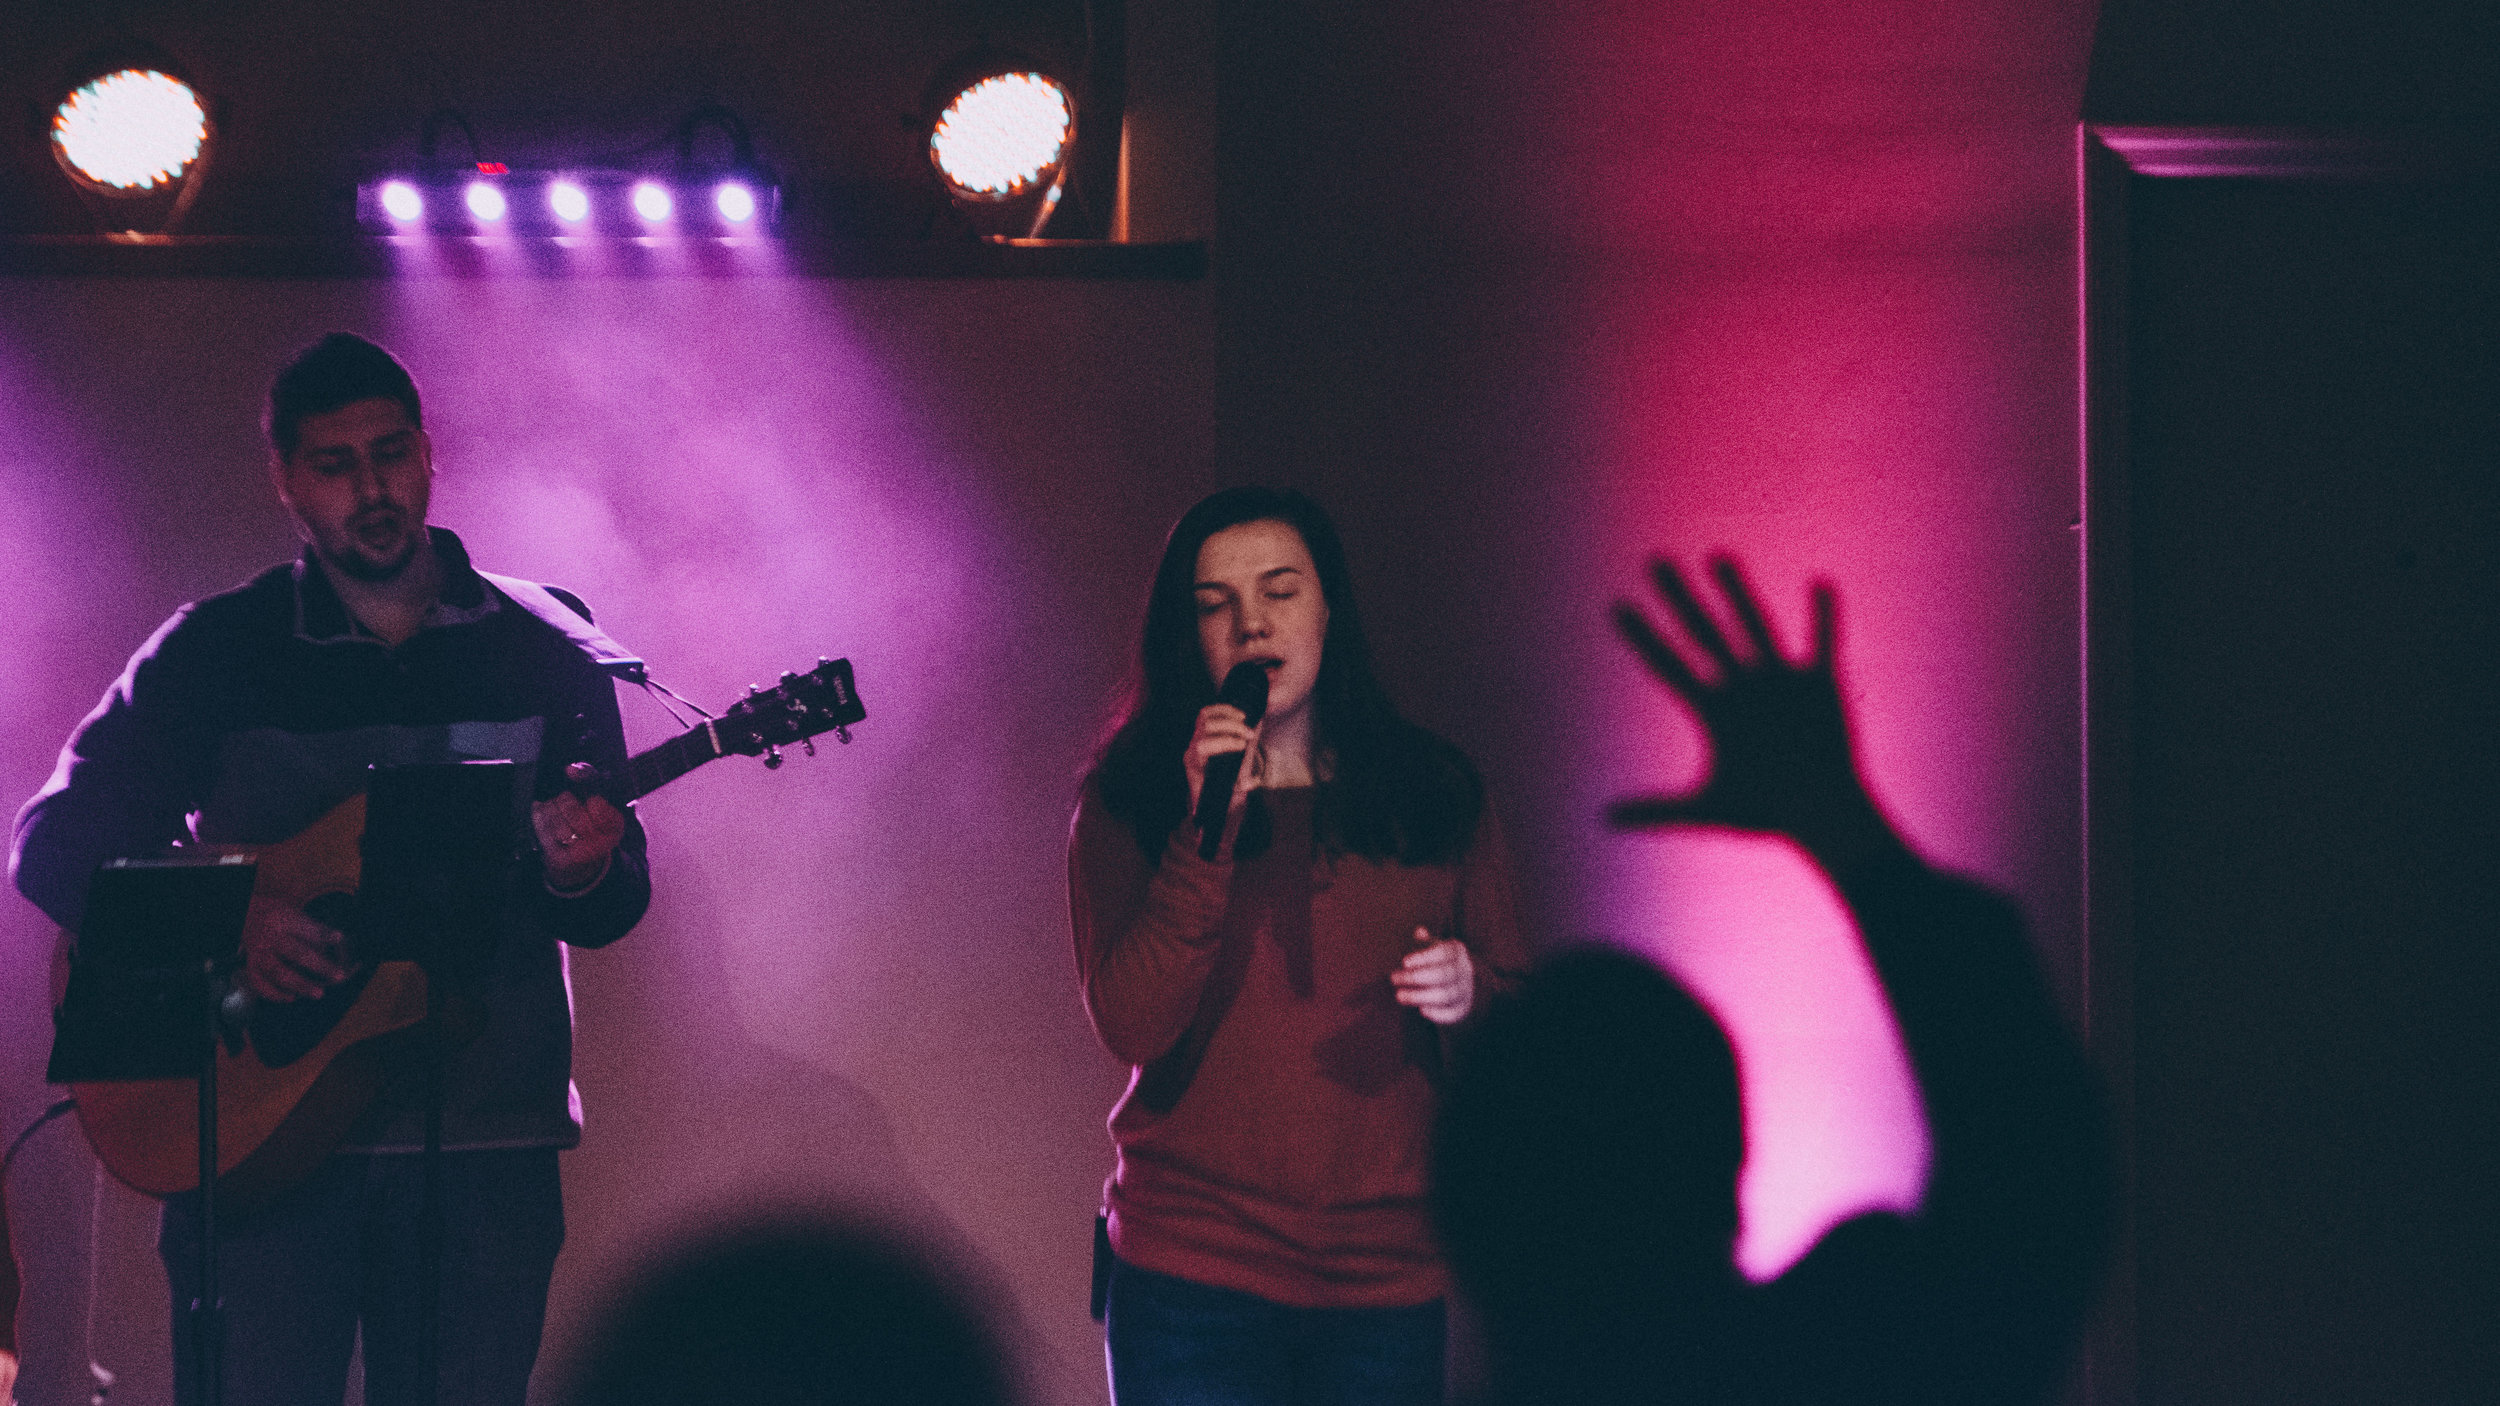 Worship Service - Sundays @ 11:00amWe meet weekly for worship (modern music led by our worship team) and teaching (a message given by a pastor or guest speaker).